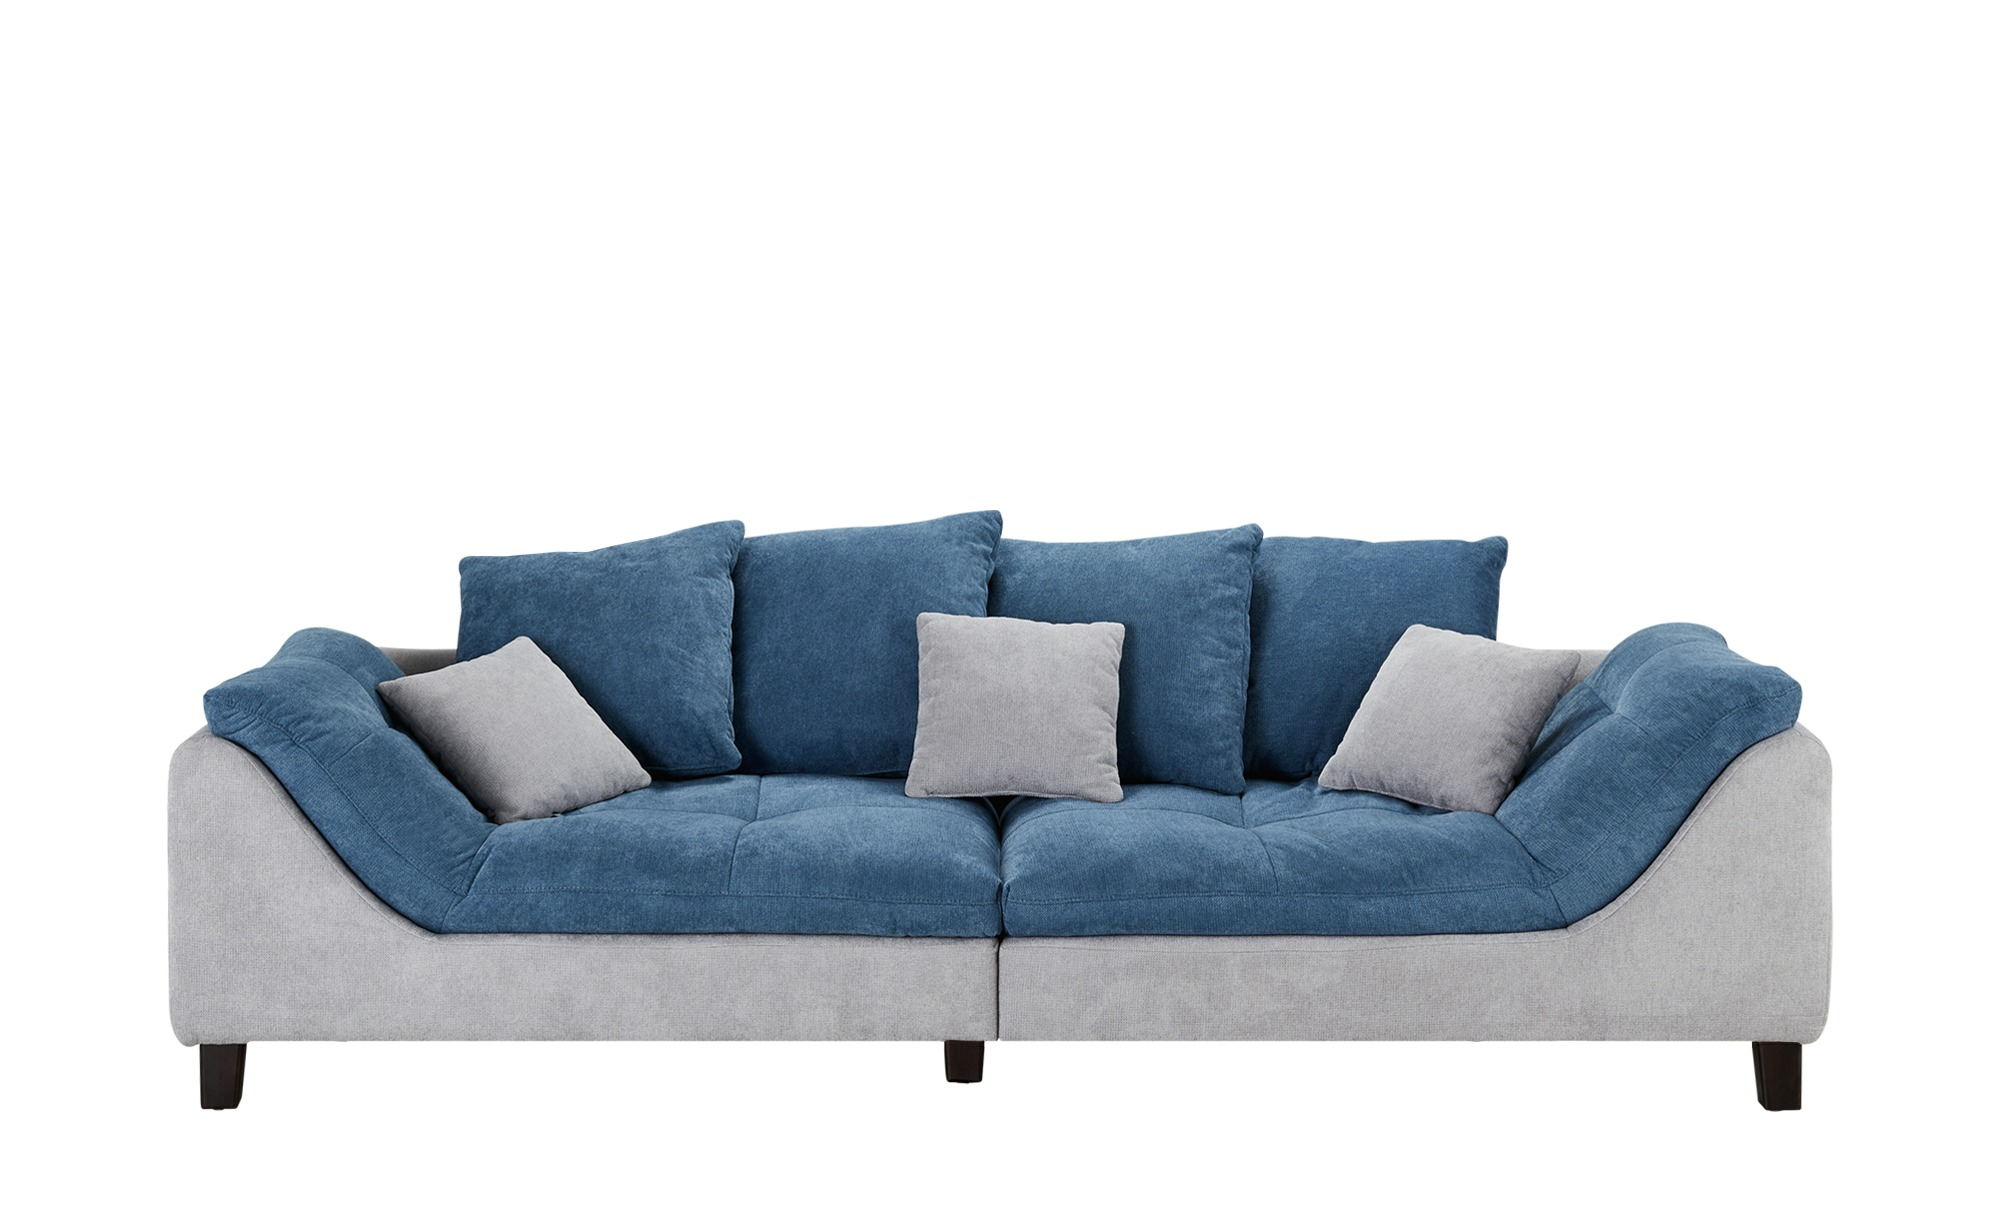 Online Sofa Kaufen Eck Big Sofa Great Schlafsofa Till Couch Big Sofa A Till